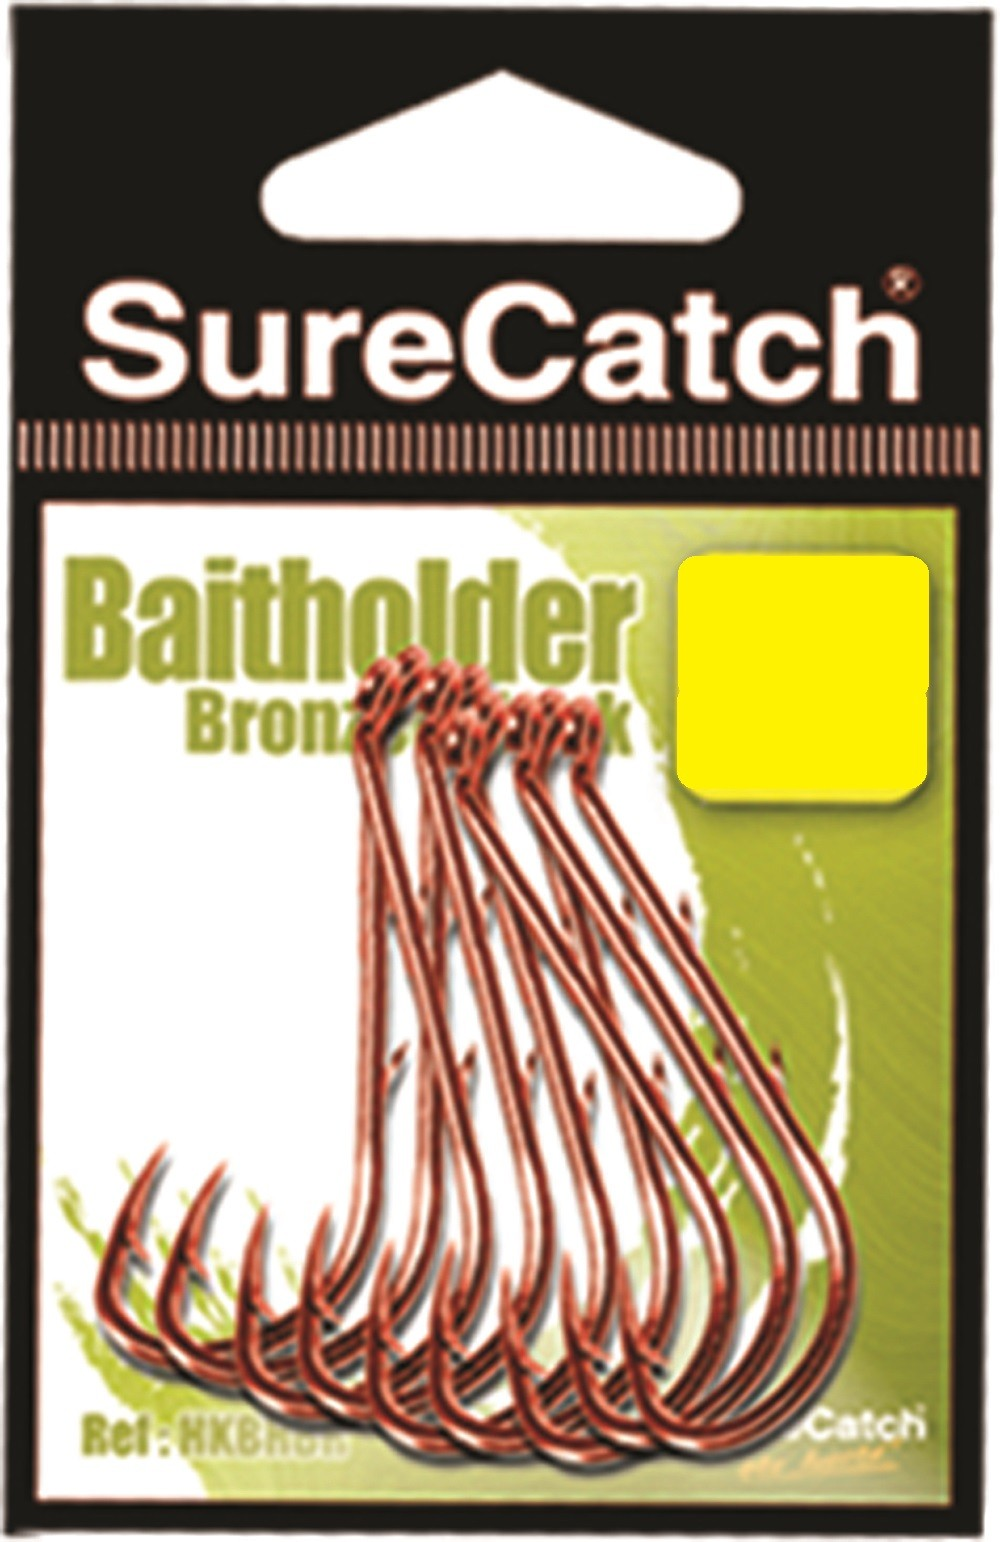 Sure Catch Bronze Baitholder Hook (8 per Pack) - Size 1/0